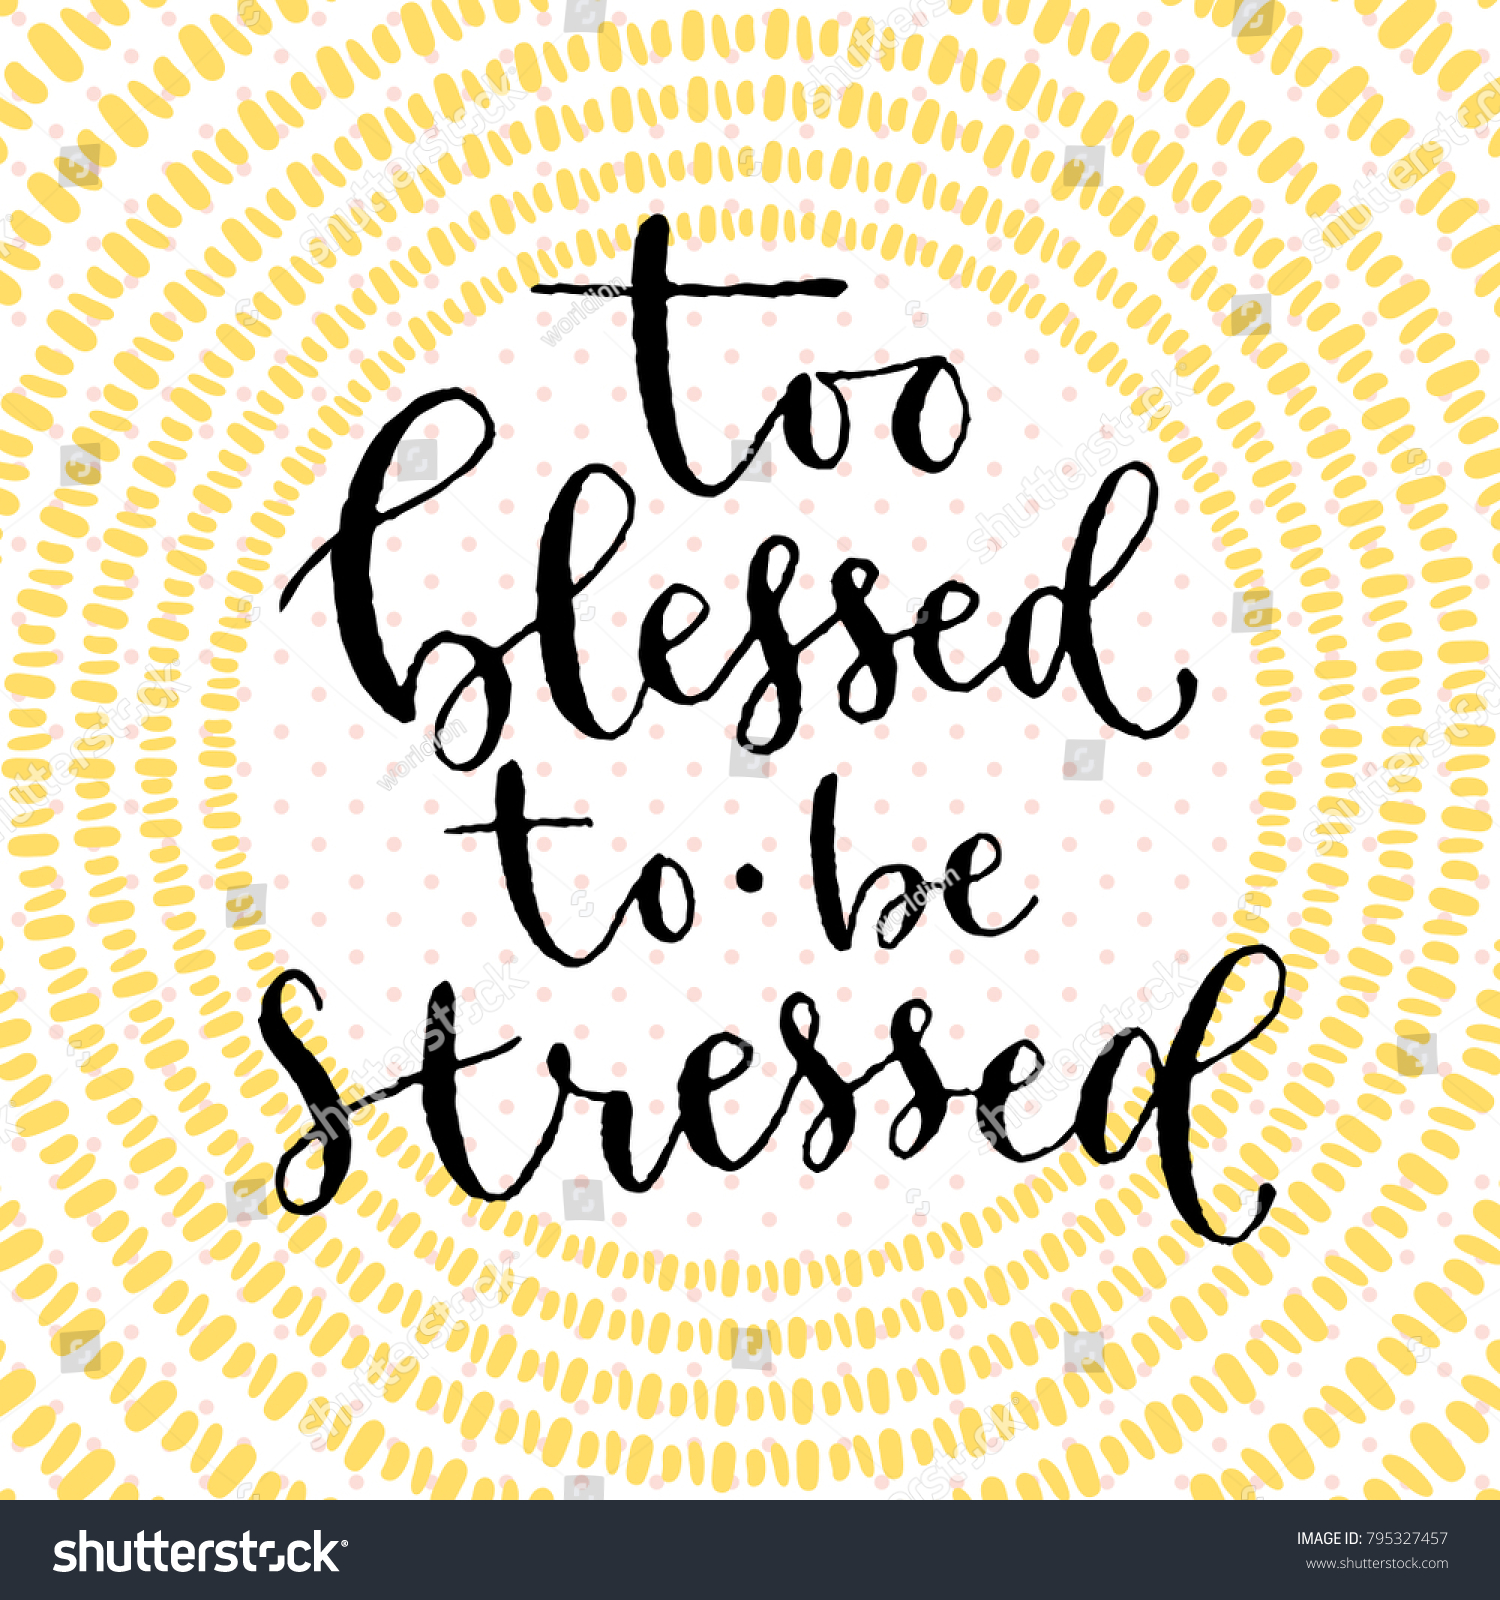 Blessed be stressed handwritten greeting card stock vector 795327457 blessed be stressed handwritten greeting card stock vector 795327457 shutterstock m4hsunfo